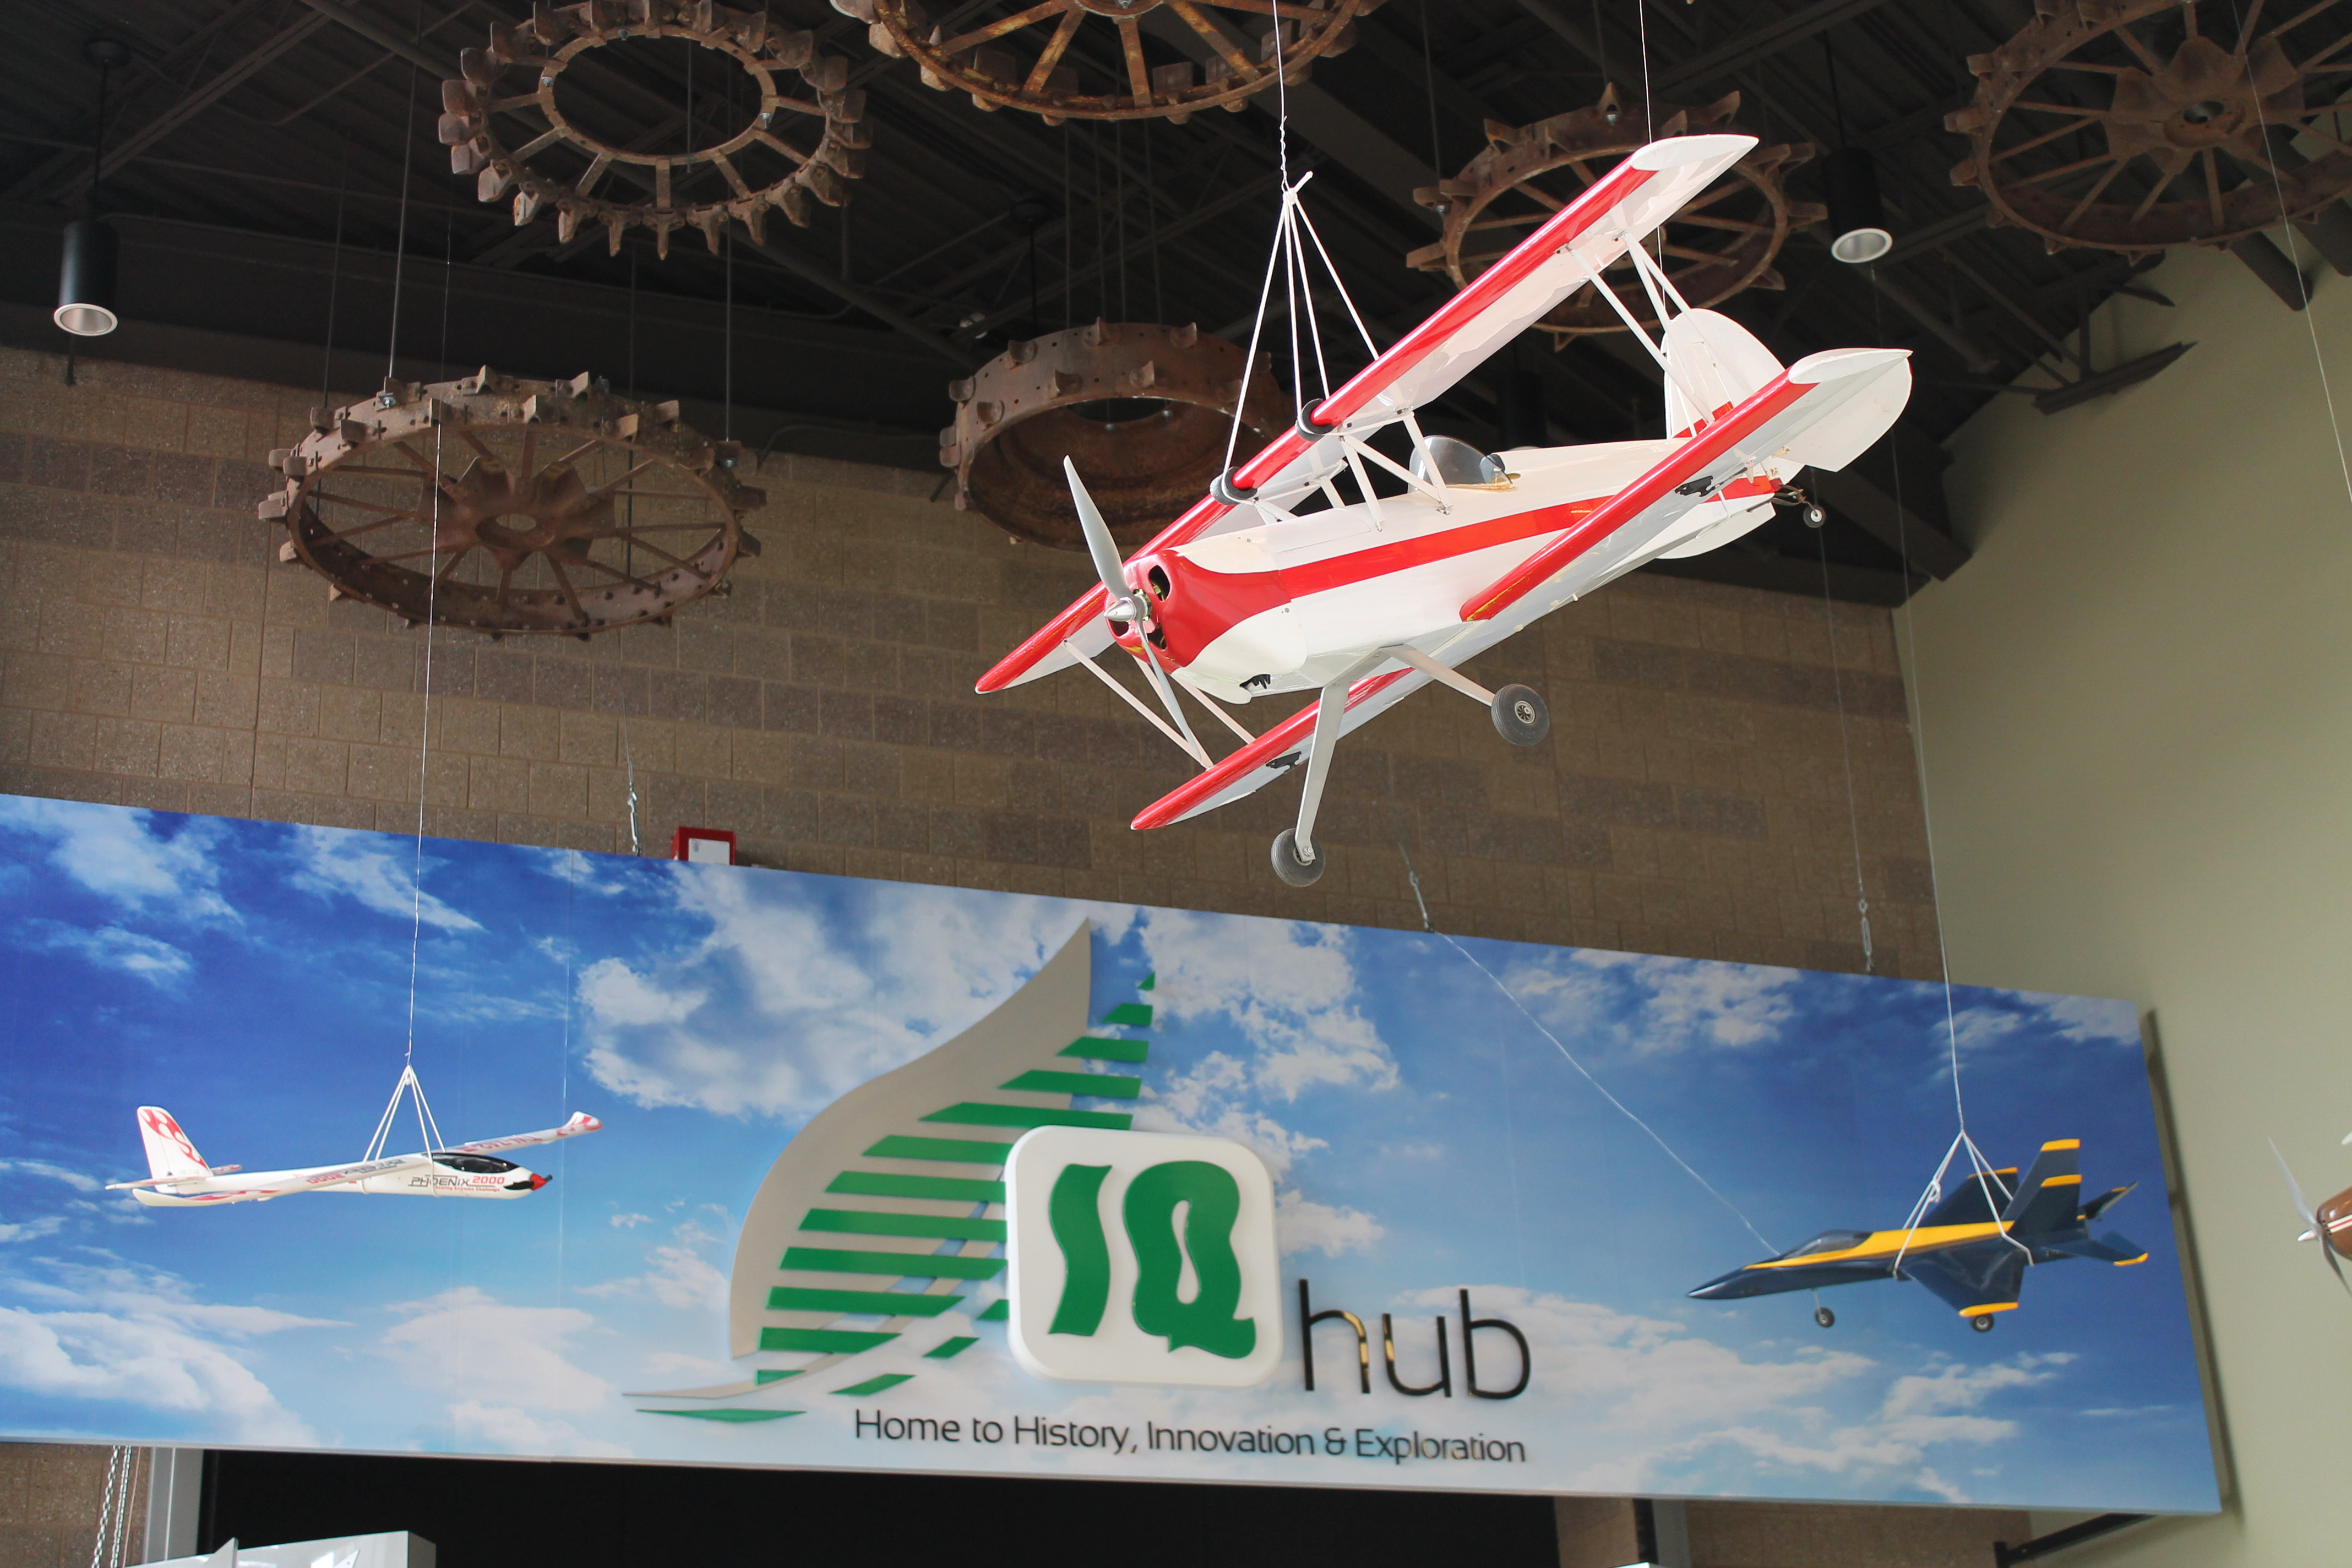 Large model airplane hanging from ceiling at AgroLiquid's IG Hub aviation exhibit.